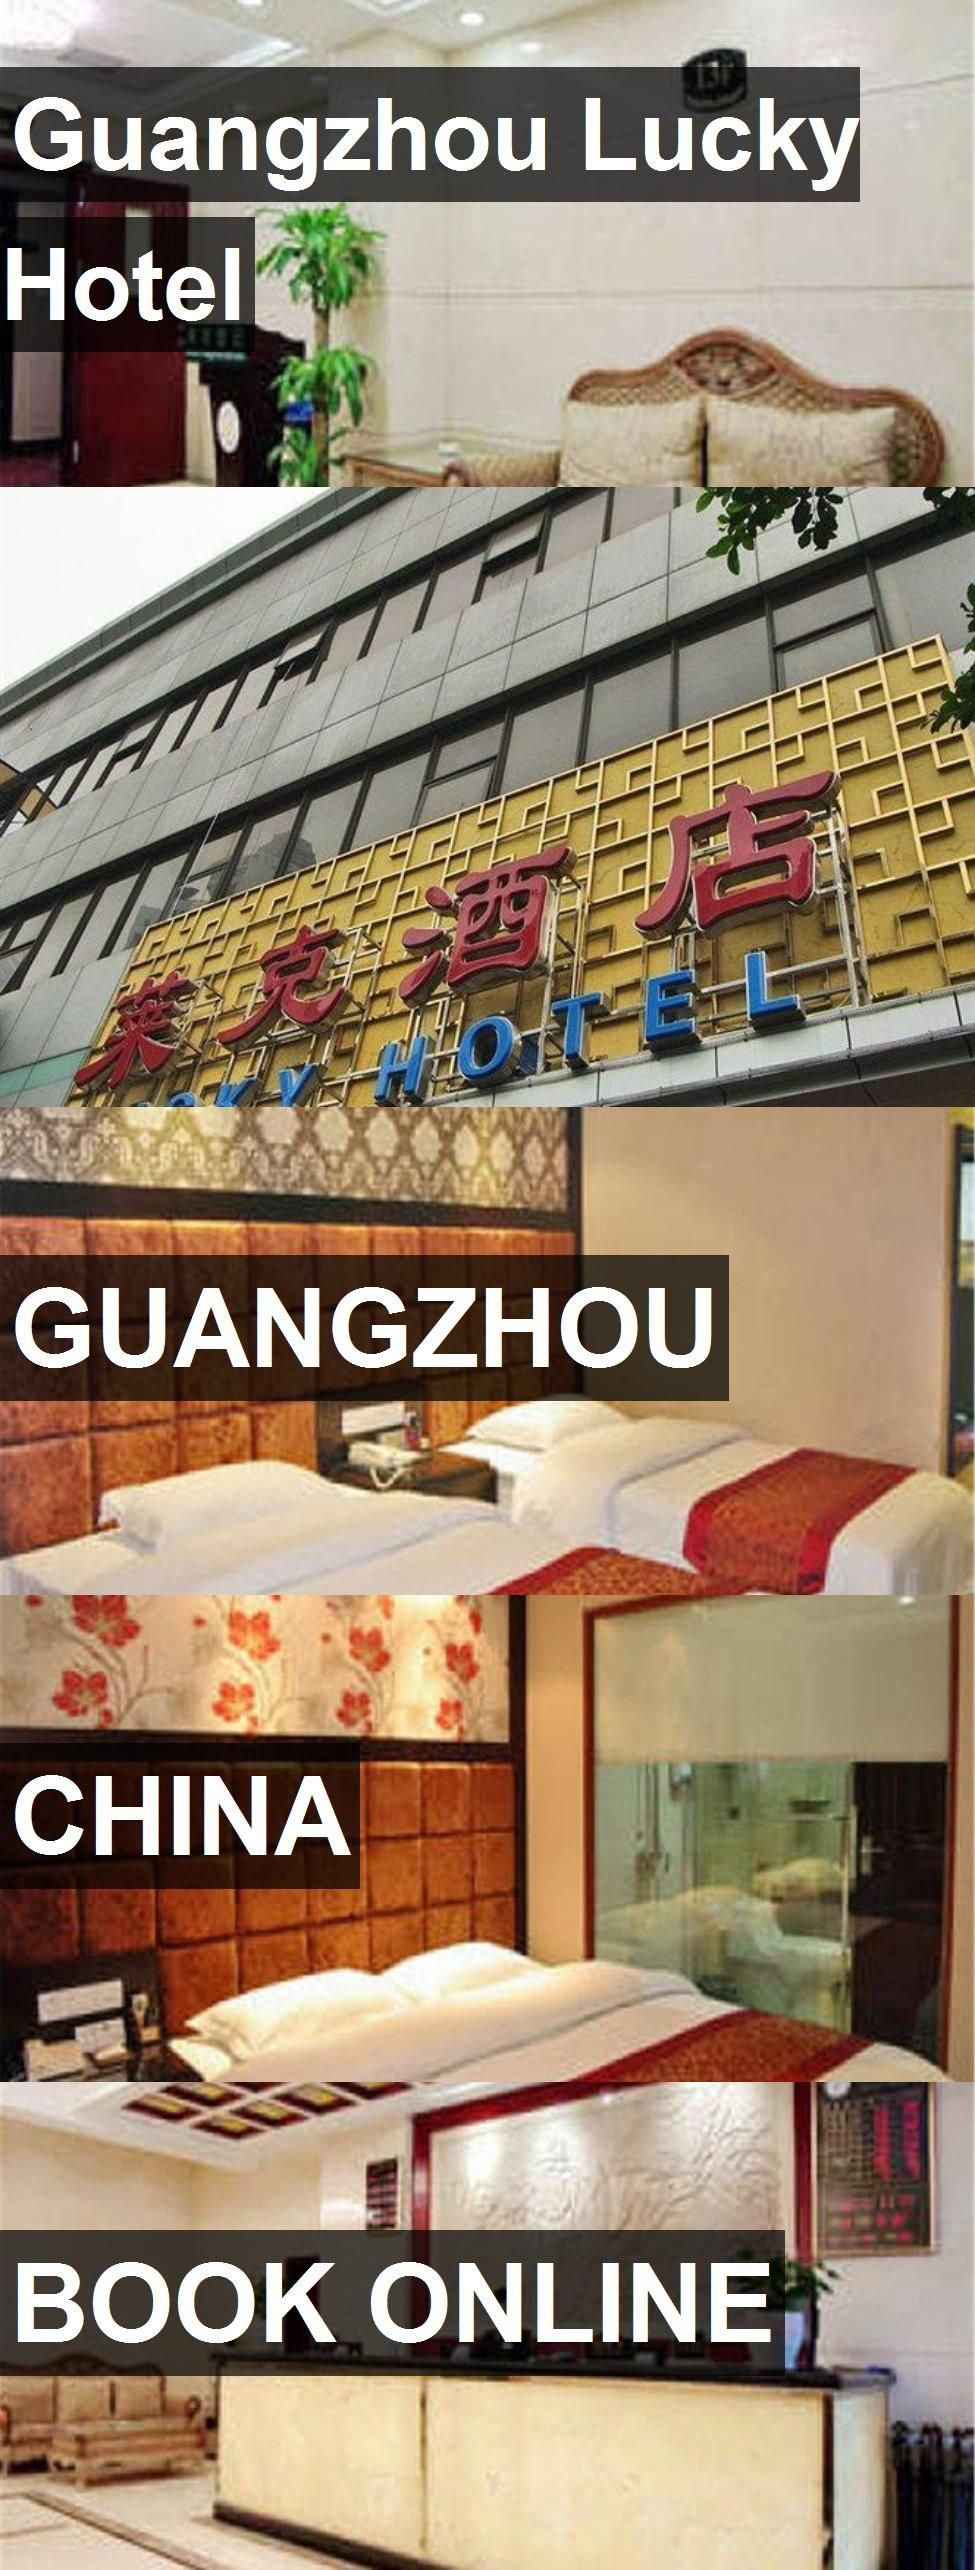 Guangzhou Lucky Hotel in Guangzhou, China. For more